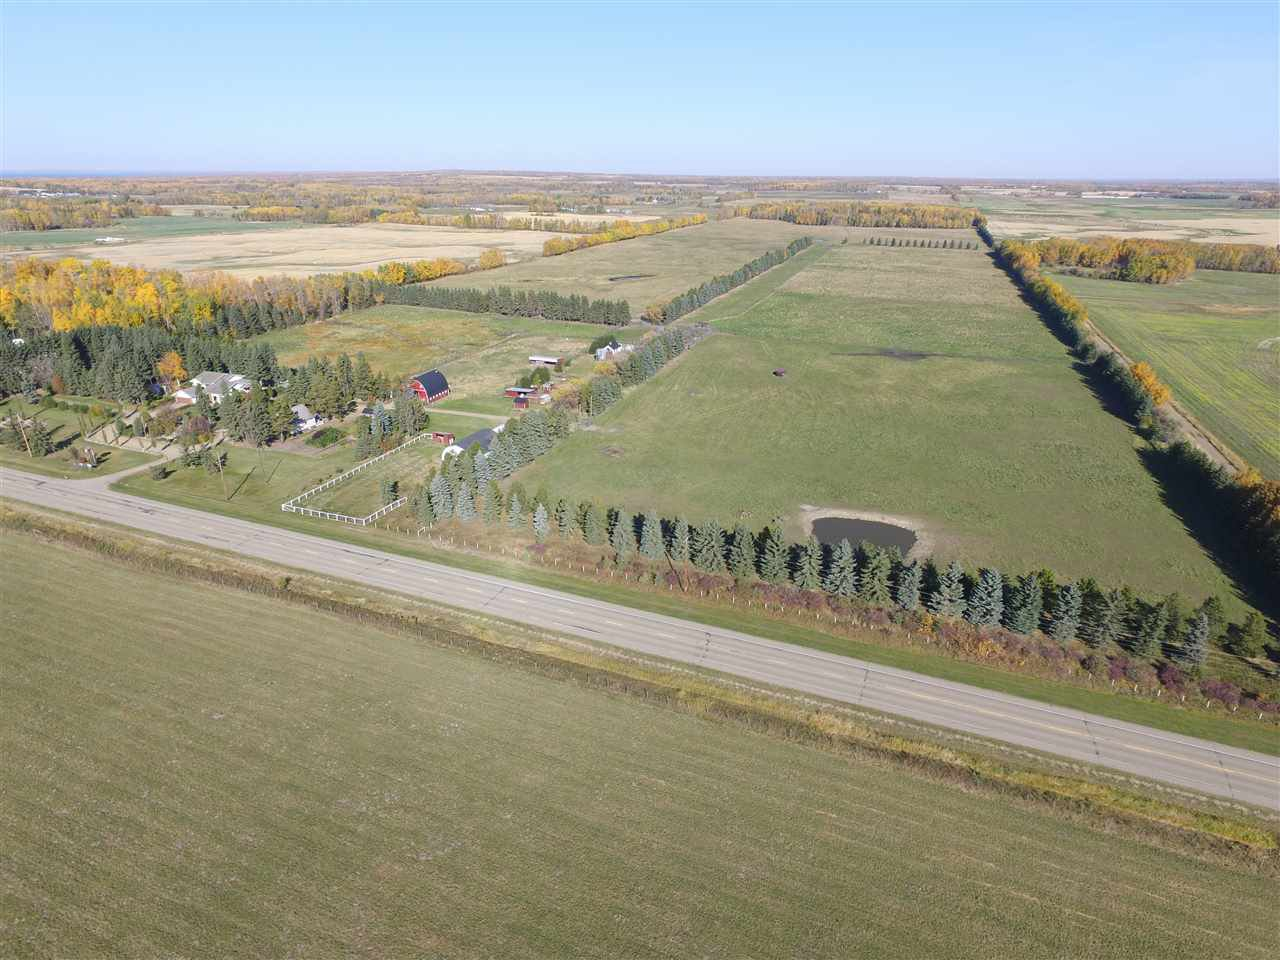 Photo 4: Photos: 273054A Hwy 13: Rural Wetaskiwin County House for sale : MLS®# E4216850